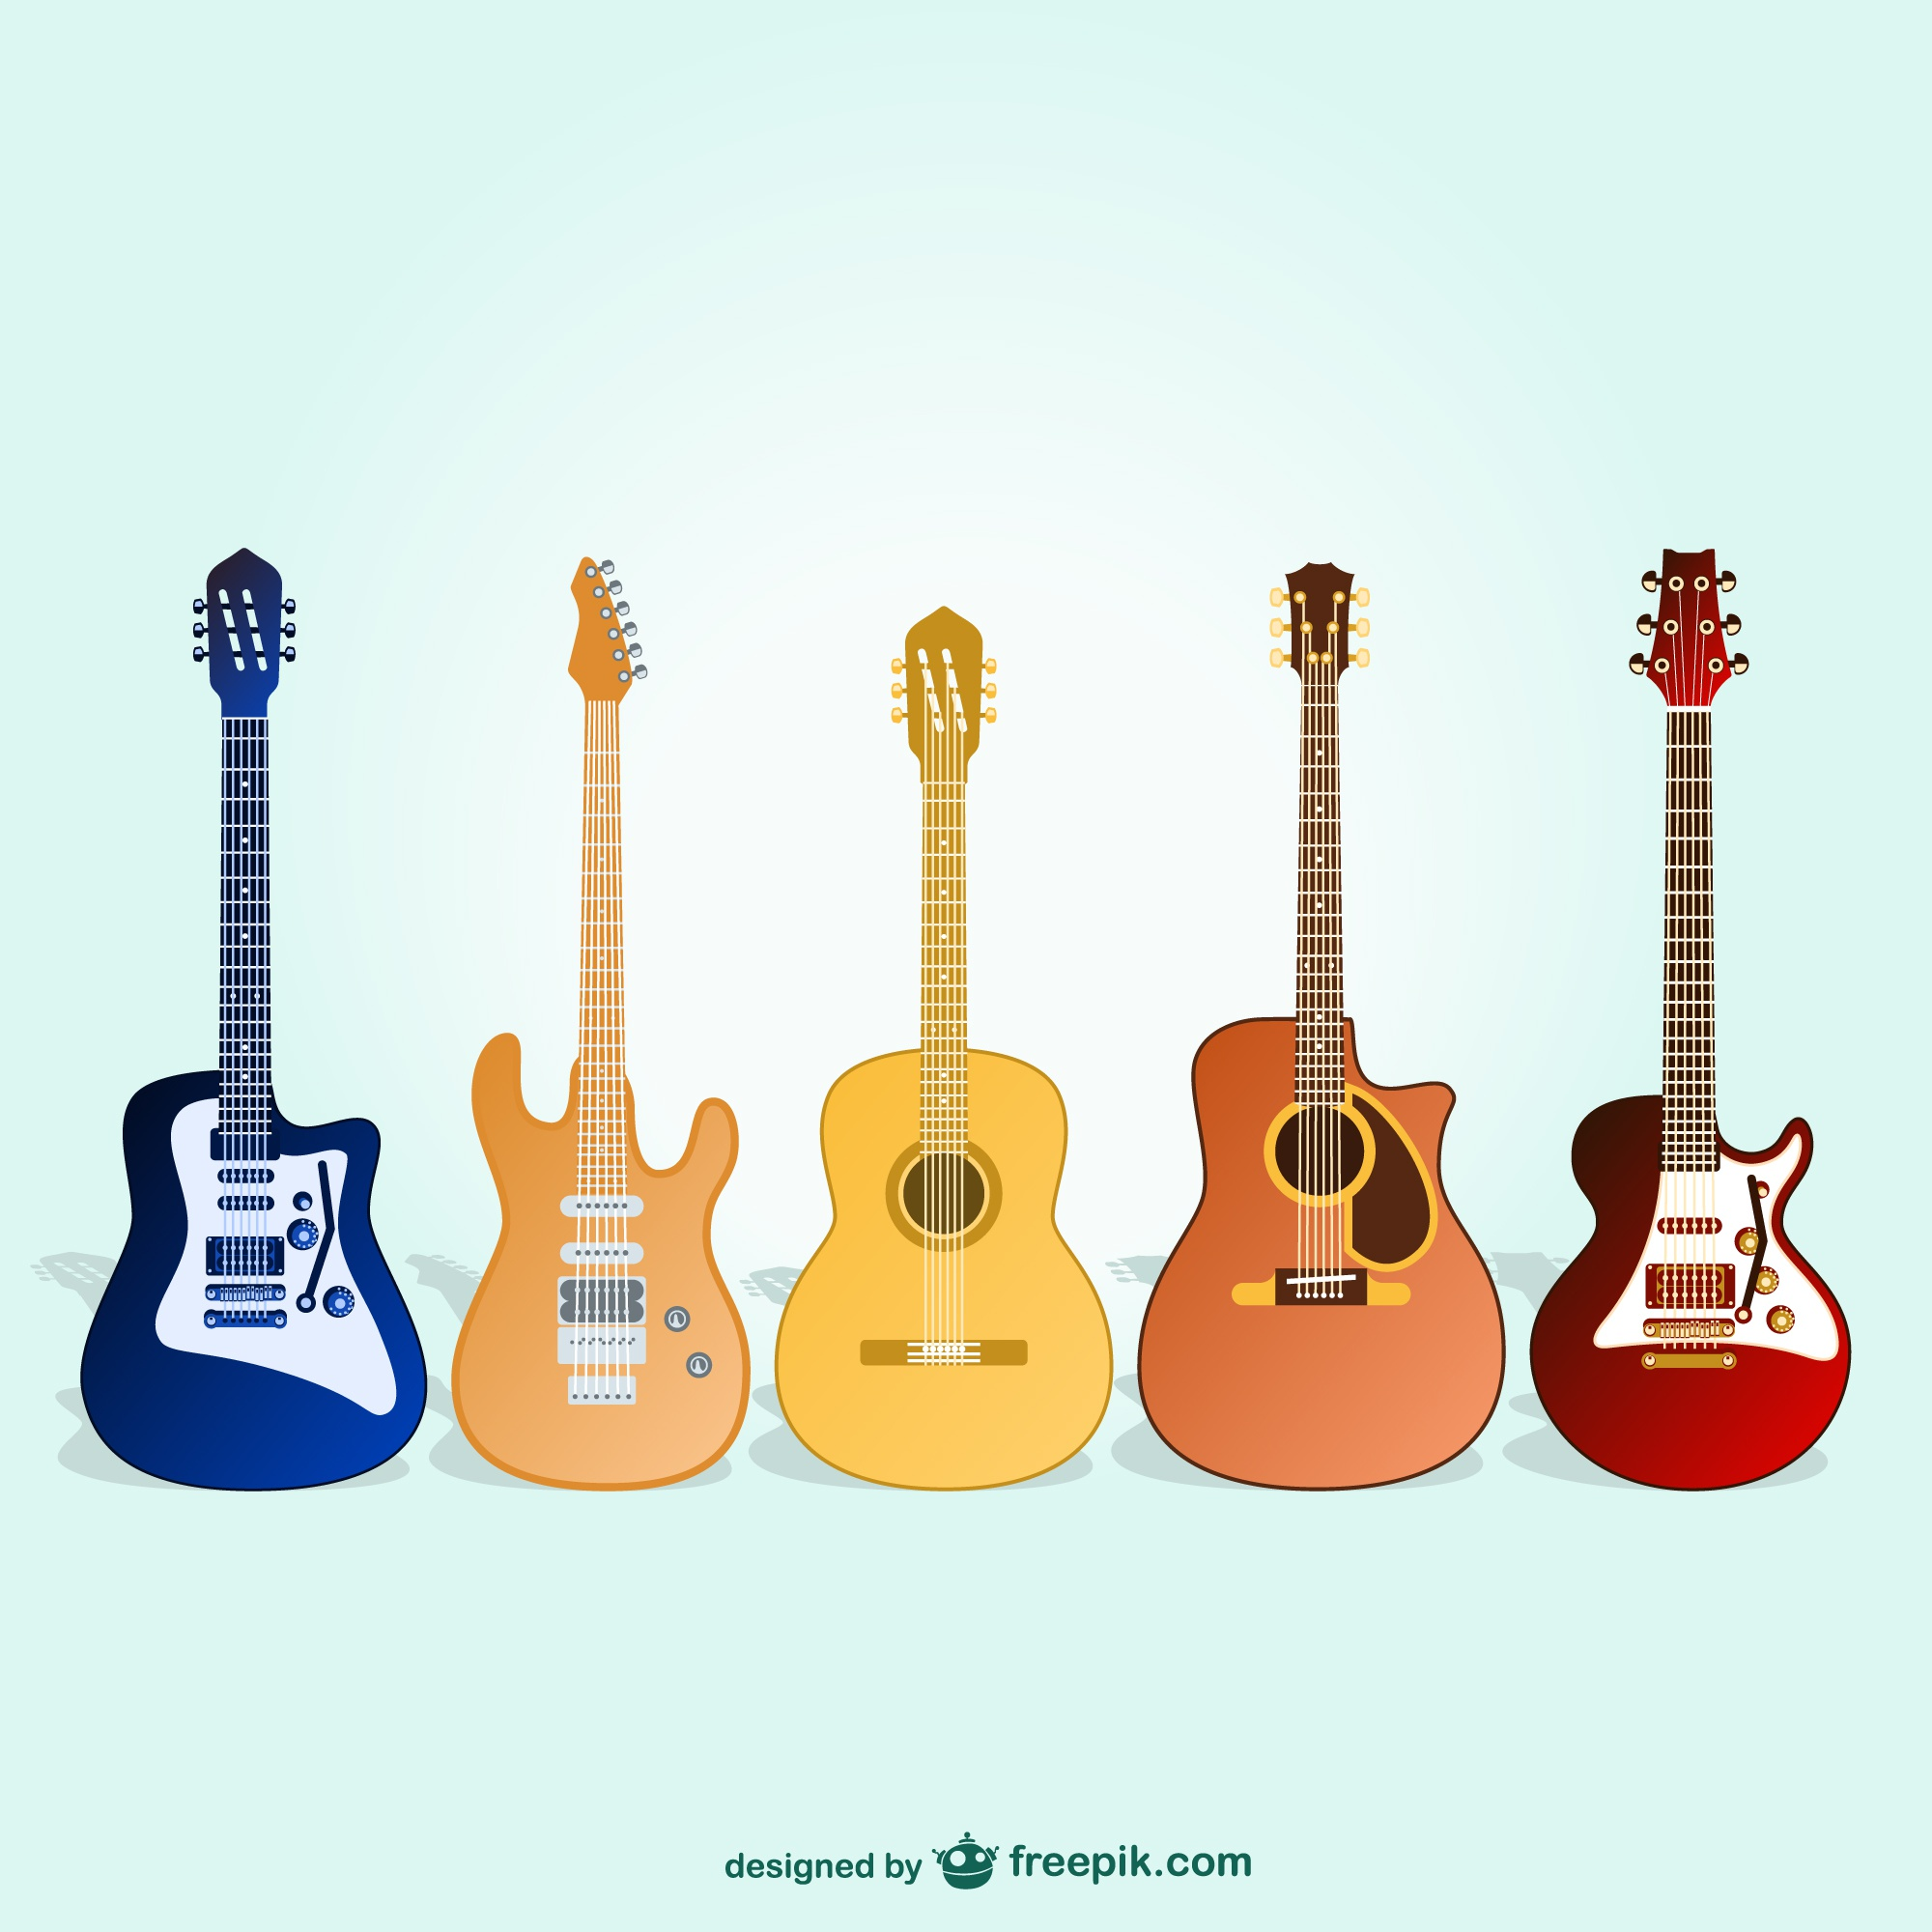 Pack de guitarras